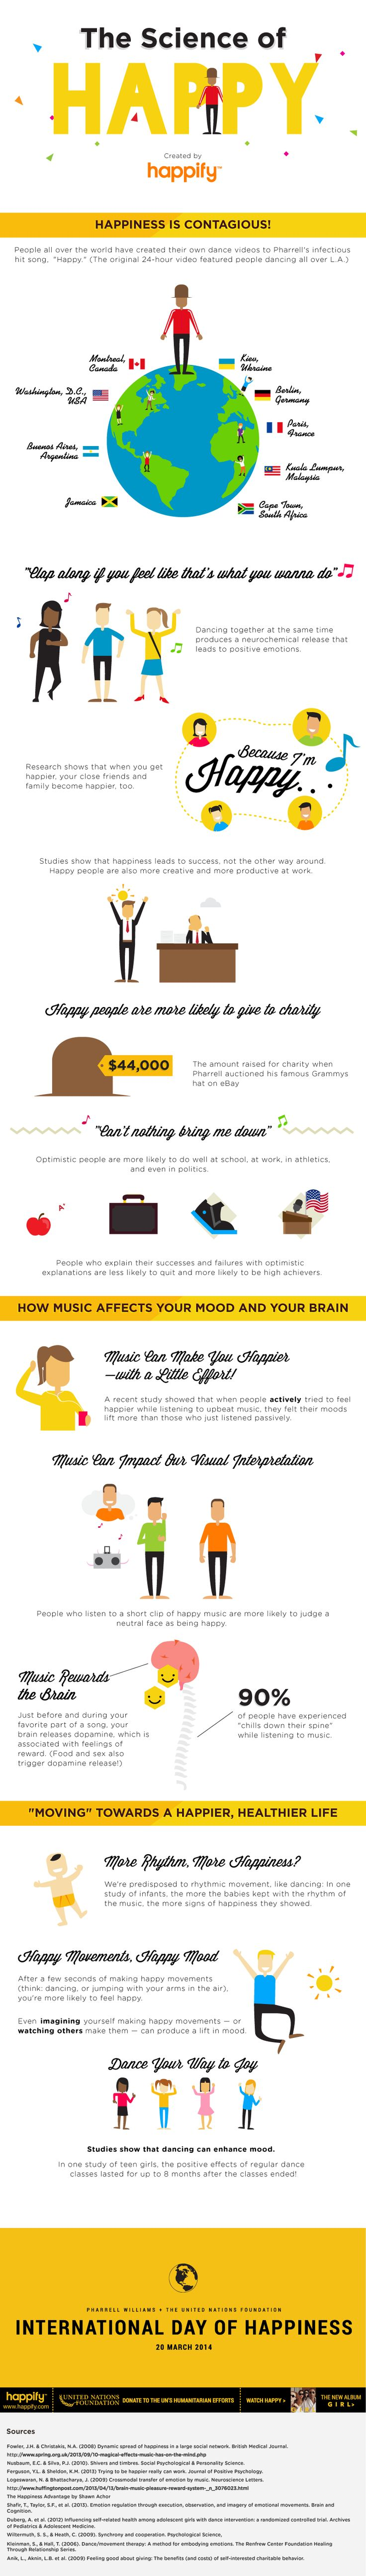 The Science of being Happy and Music plays a huge role!